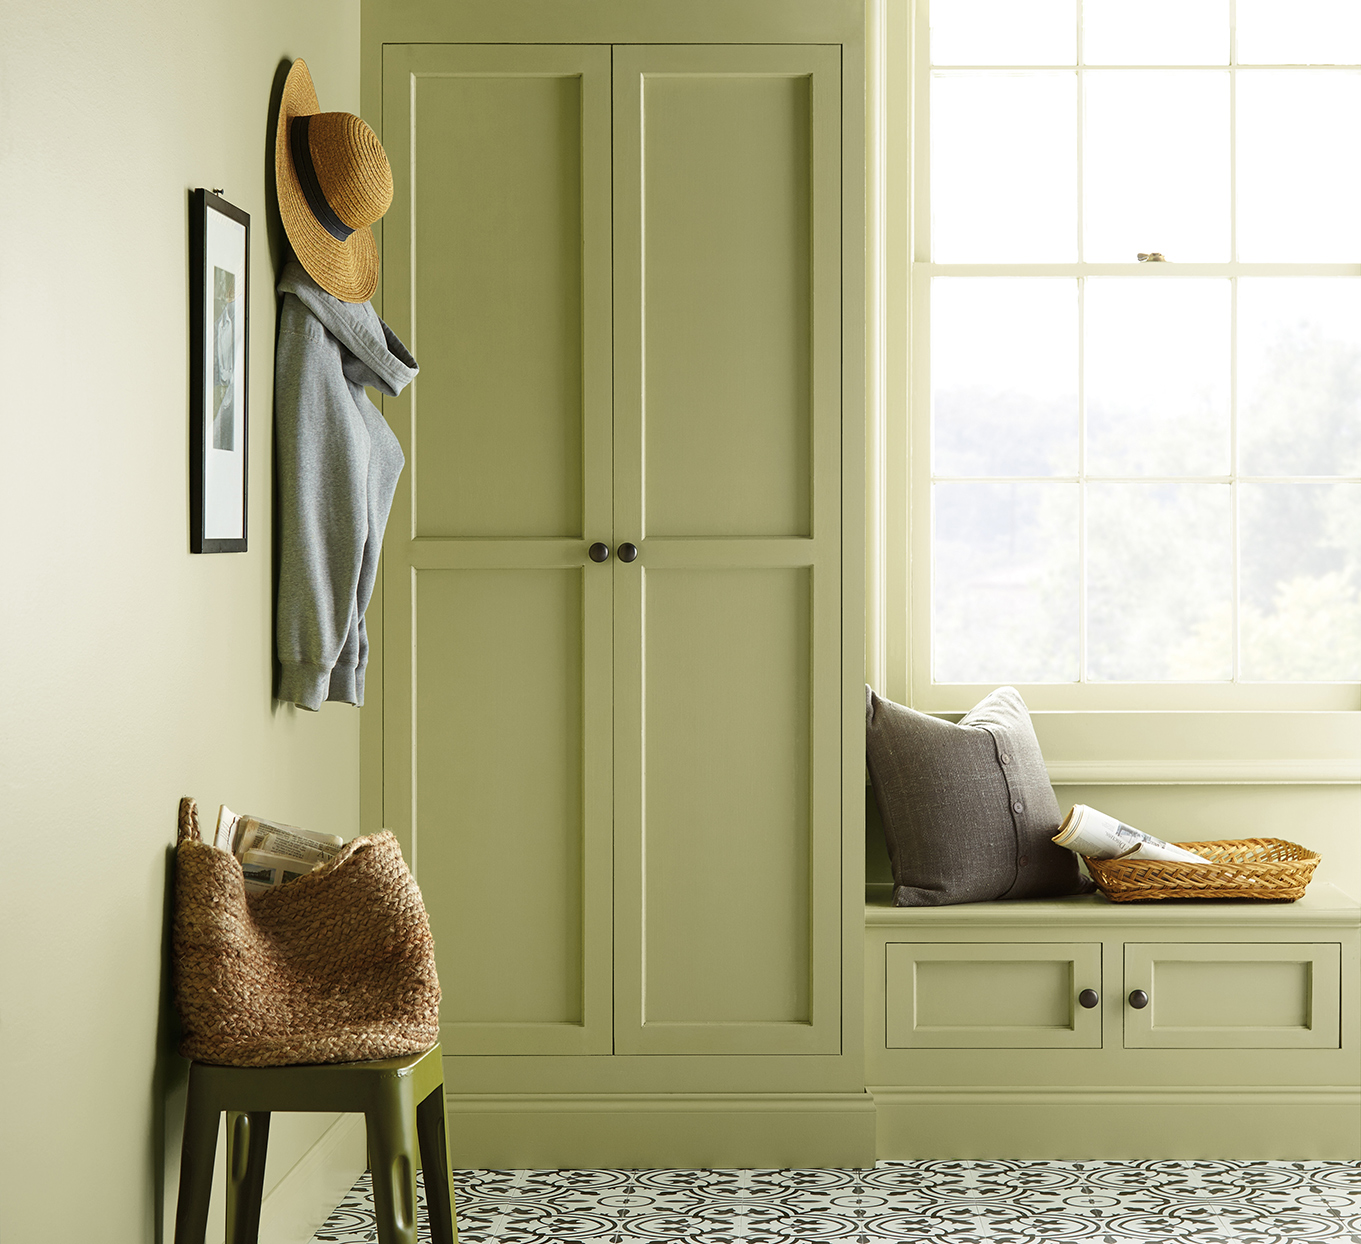 sage green cabinet and window seat with sun shining